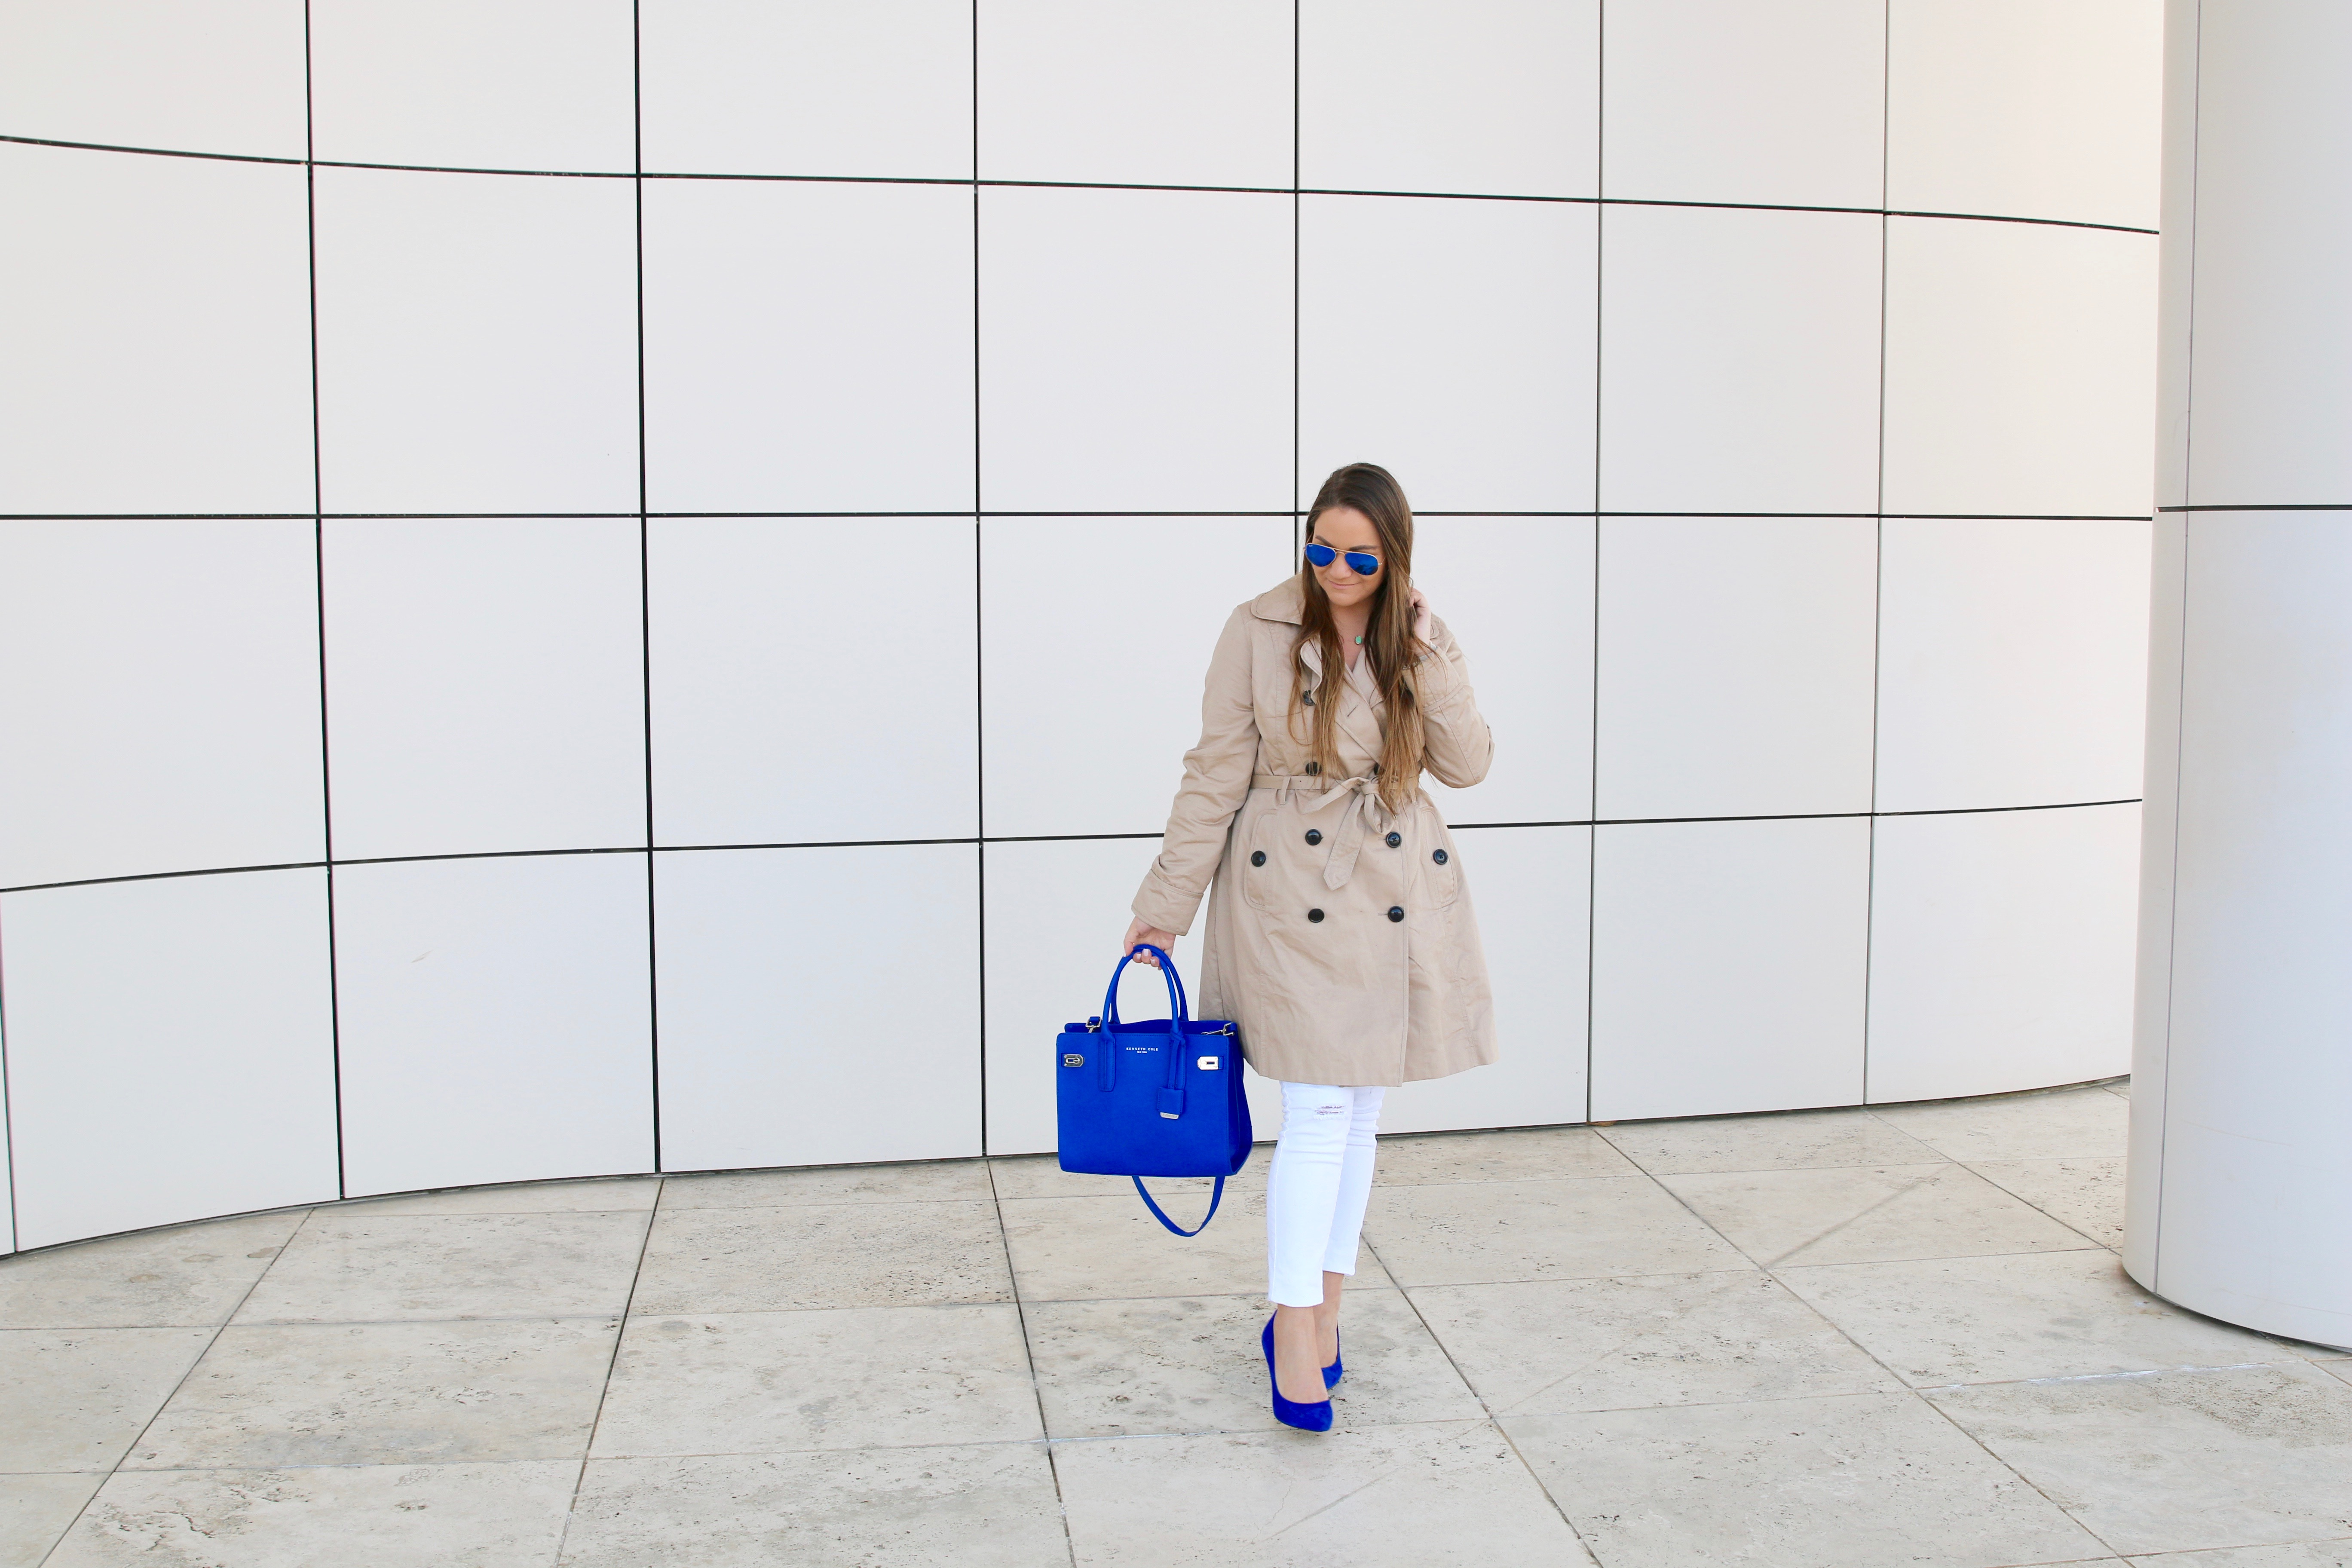 missyonmadison, melissa tierney, cobalt blue satchel, cobalt blue pumps, blue pumps, cobalt blue suede pumps, white skinny jeans, old navy, old navy white skinny jeans, trench coat, spring style, la blogger, la style, white old navy rockstar jeans, white old navy skinny jeans, kenneth cole bag, ray bans, blue ray bans, mirrored aviators, blue mirrored ray bans, brunette hair, fashion blogger, fashion blog,